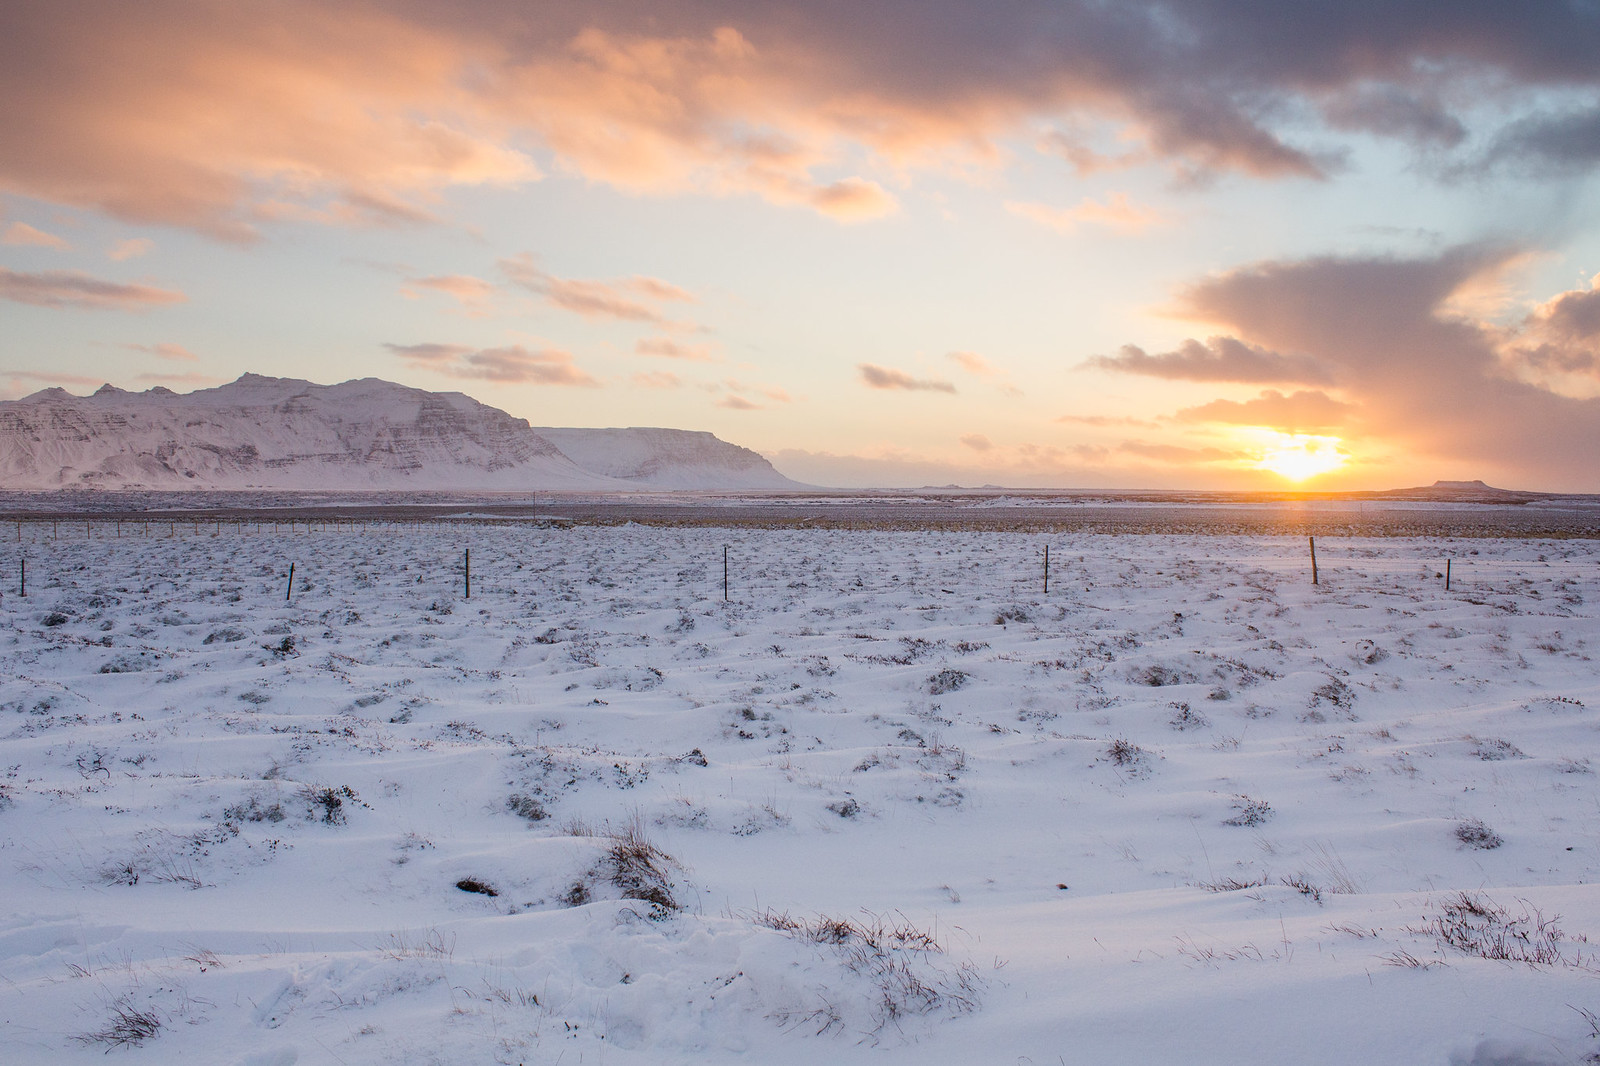 Midday sunrise at the Snaefellsnes Peninsula during December